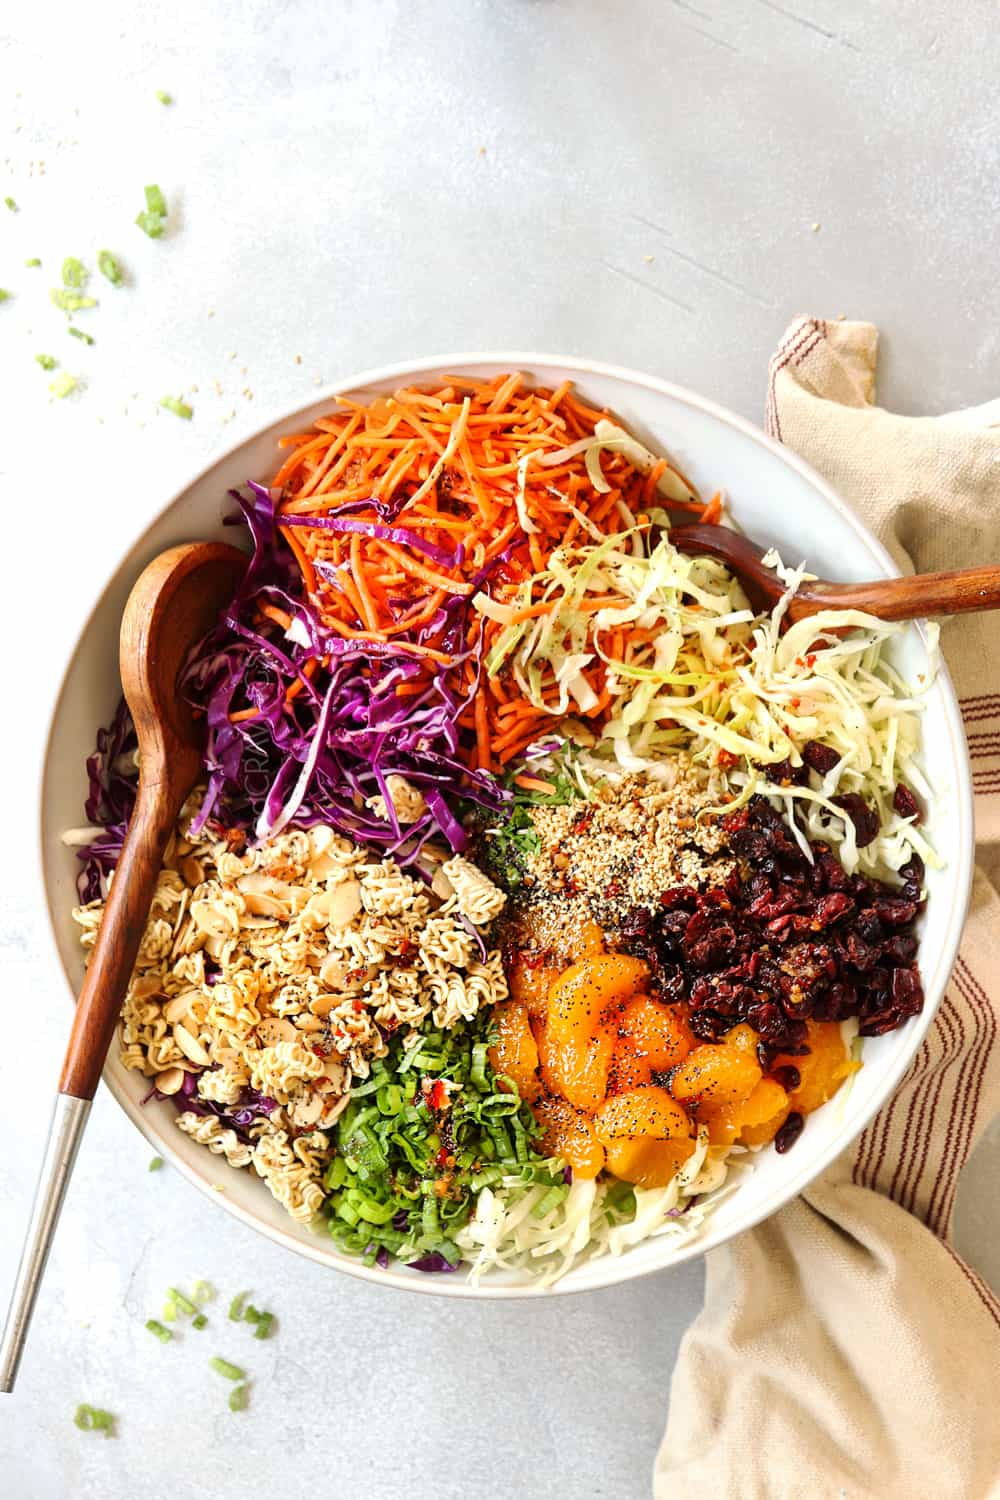 showing how to make Ramen Noodle Salad recipe by adding toasted ramen, cabbage, carrots and sesame seeds to a large white bowl